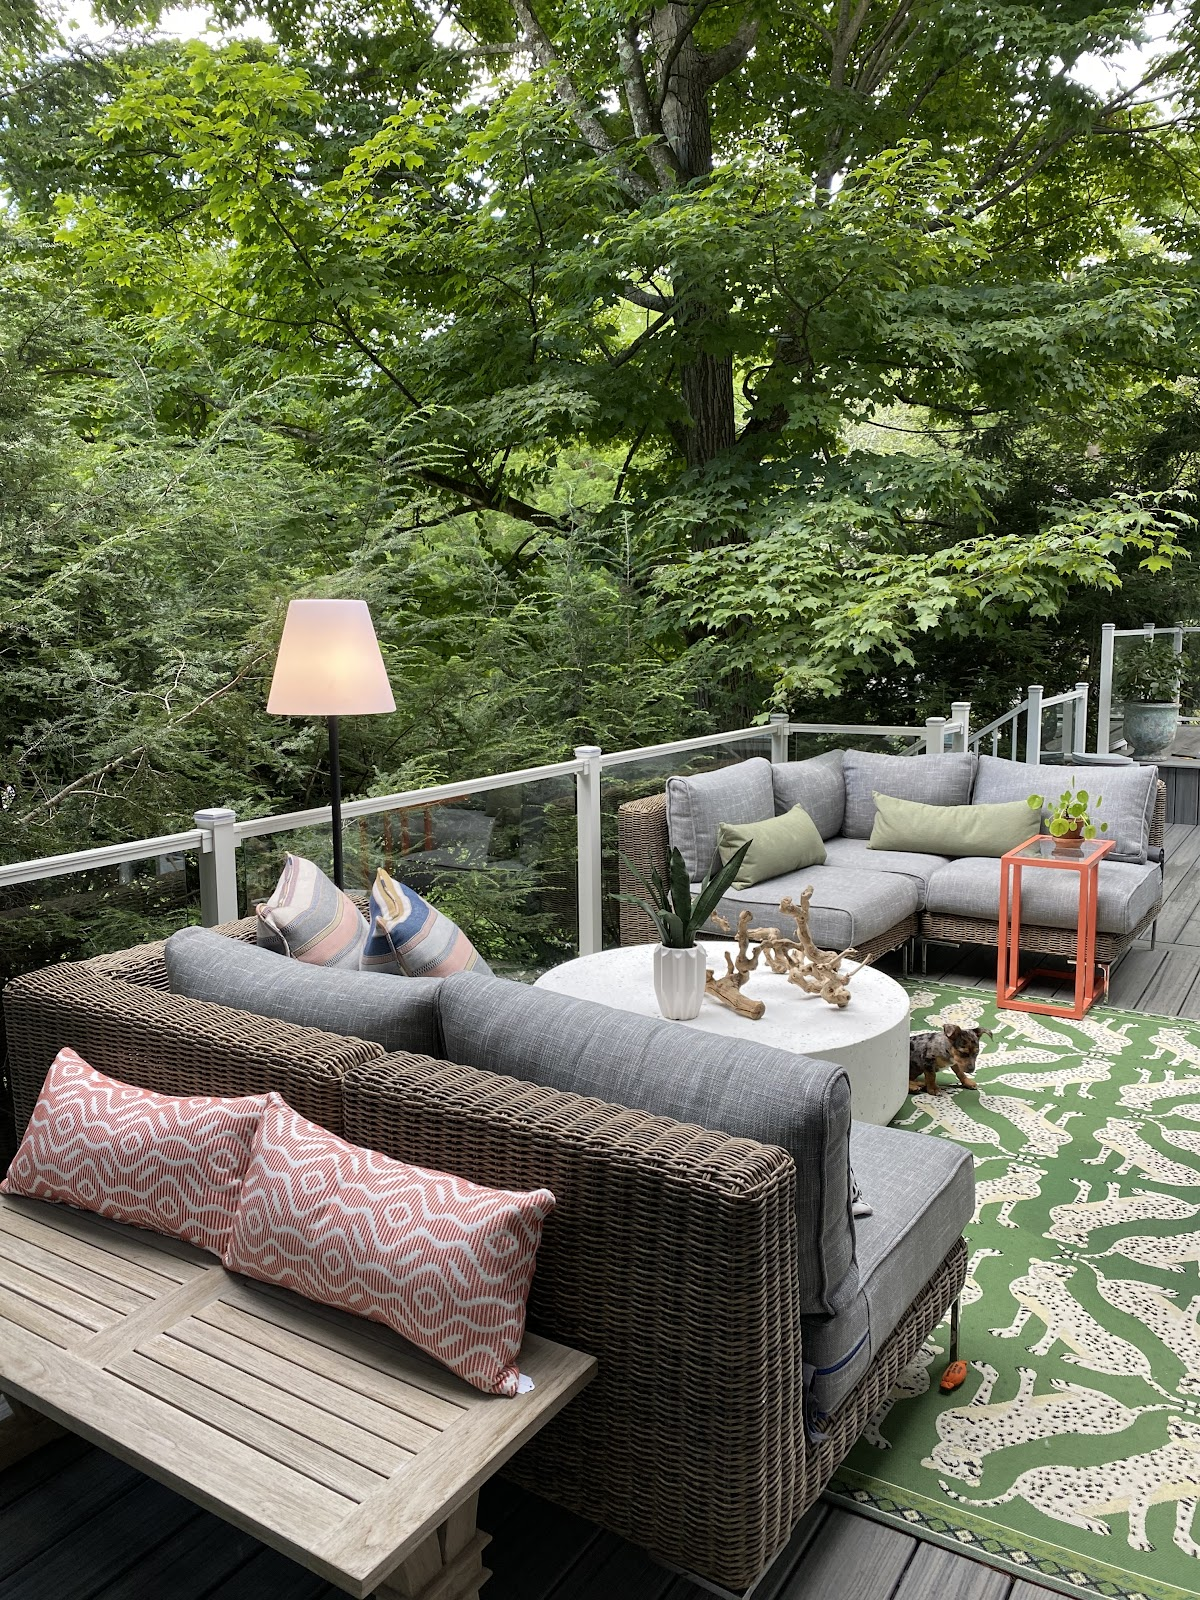 Outdoor patio space on a deck in wooded Pennsylvania backyard